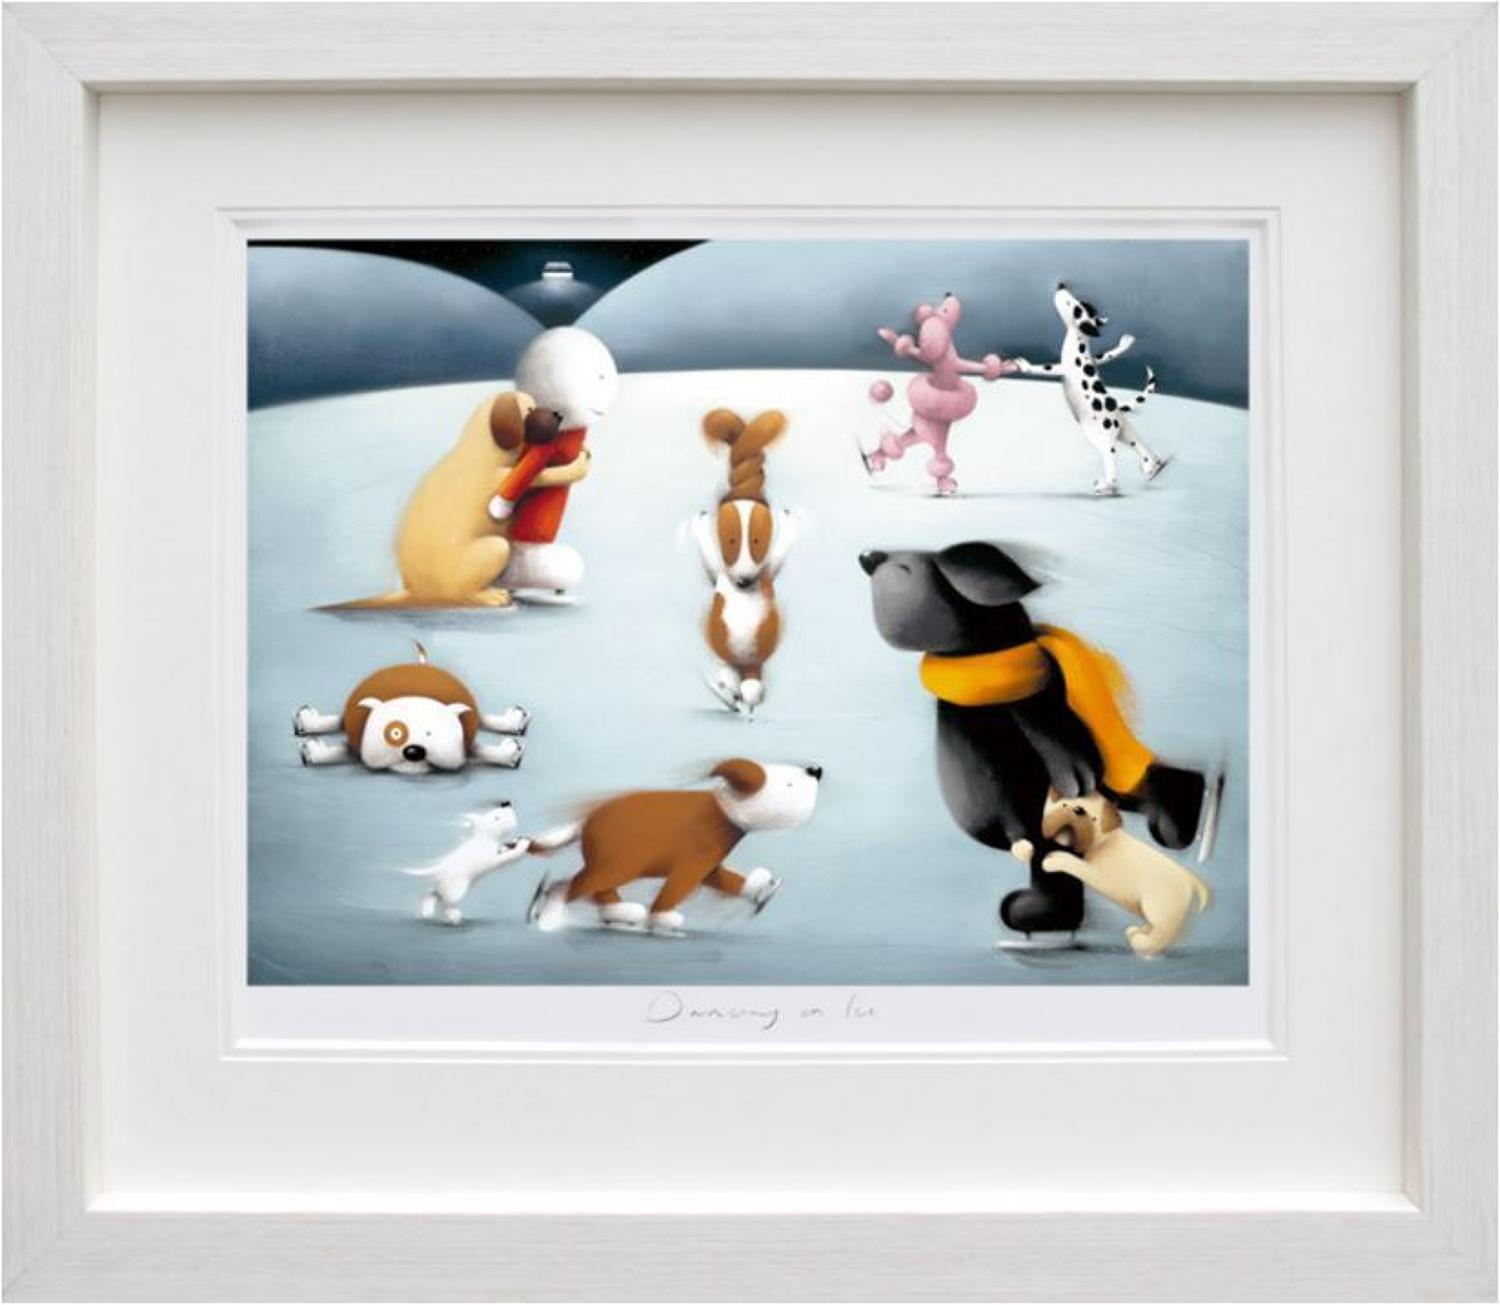 Doug Hyde - Dancing on Ice framed art print